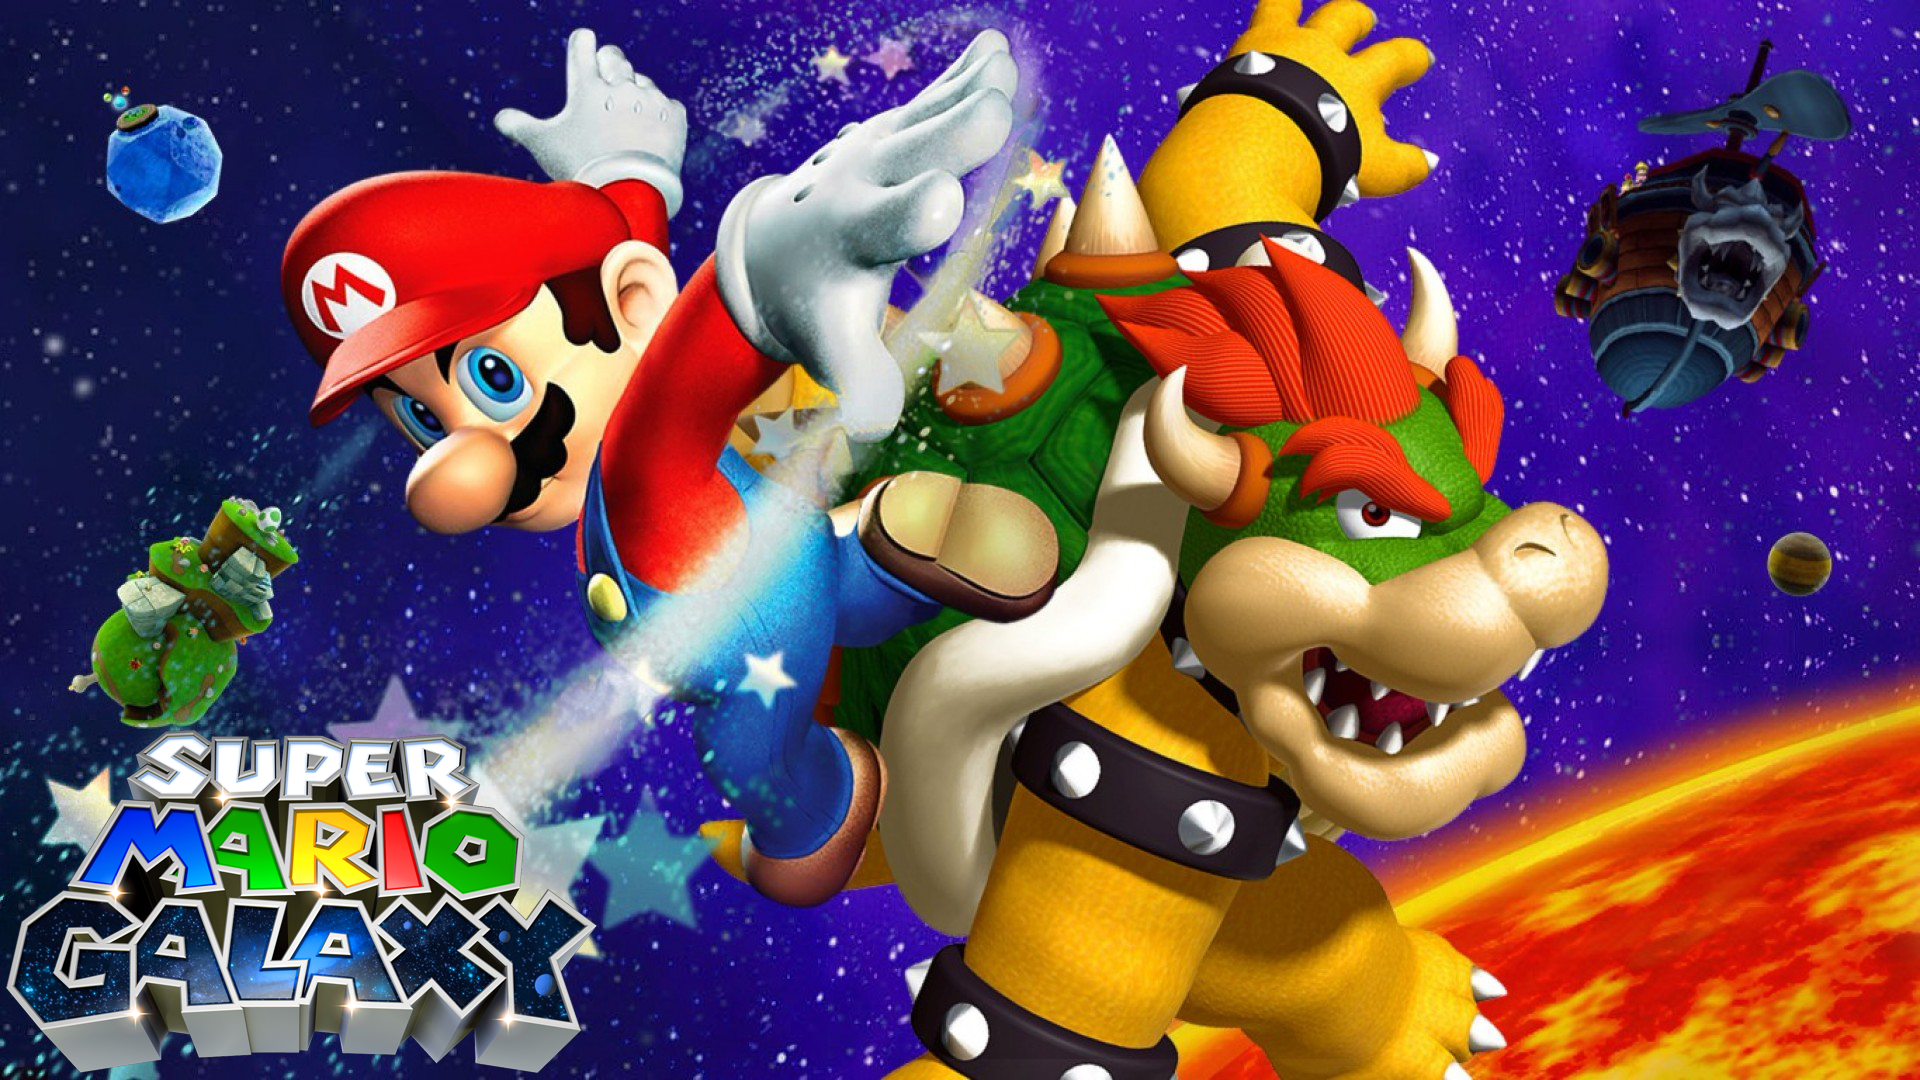 Super Mario Galaxy Wallpaper Fondo De Pantalla Hd Fondo De